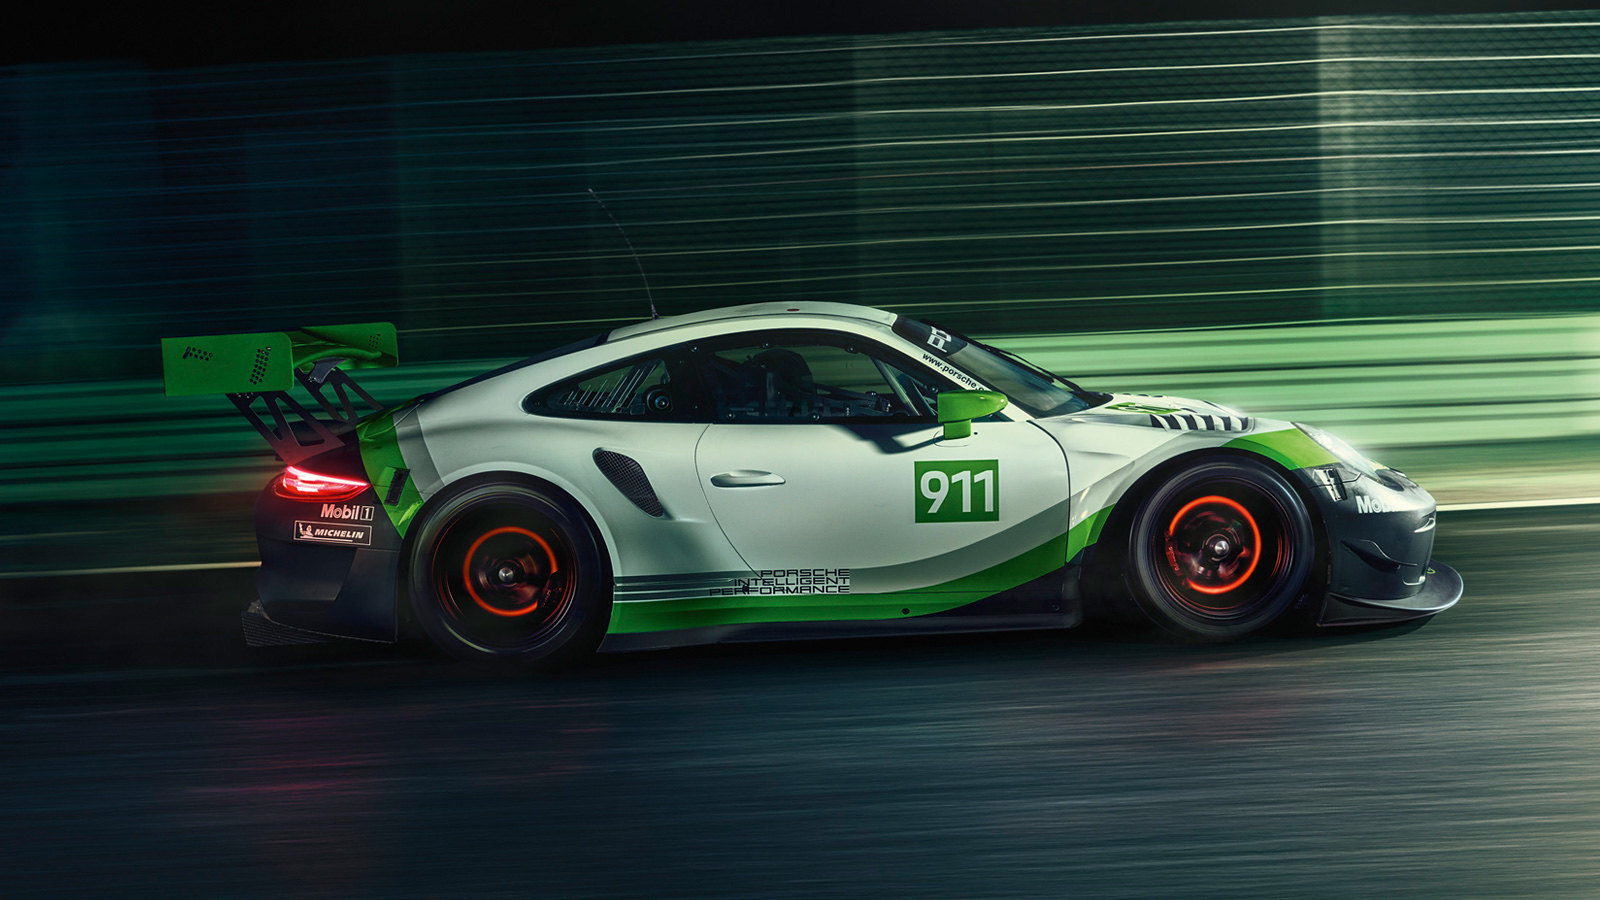 The Porsche 911 GT3R is coming to iRacing this week